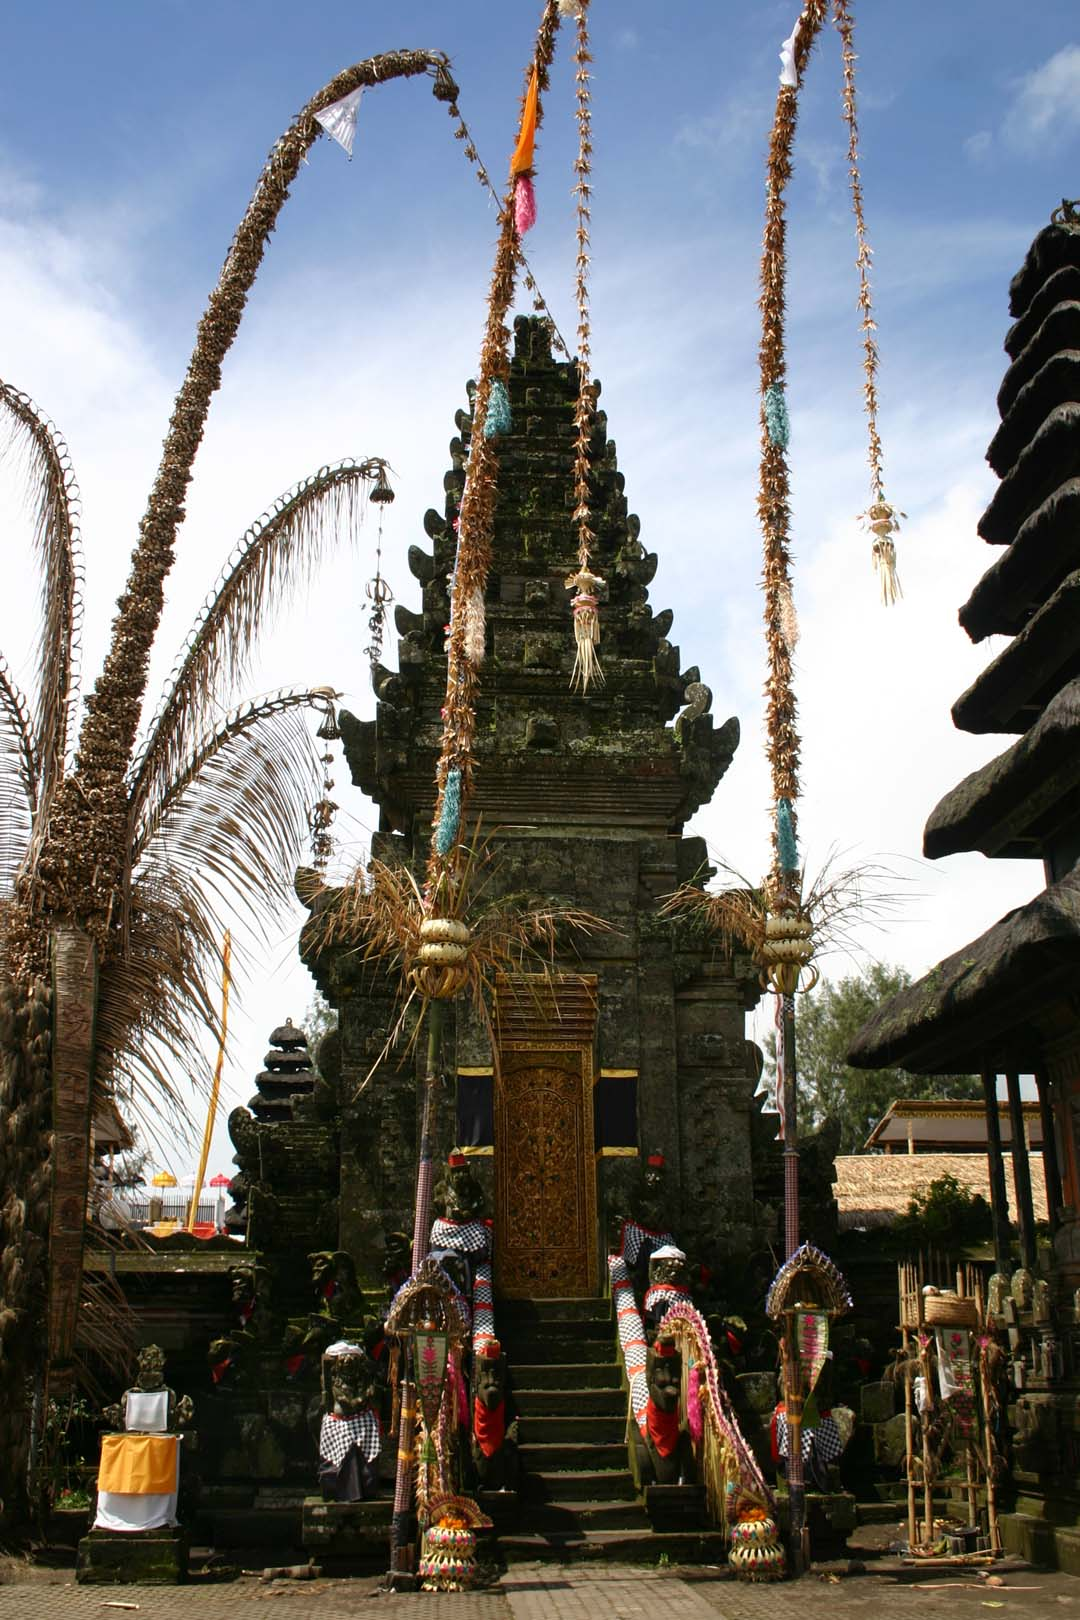 Hindu Temple in Ubud, Bali, Indonesia